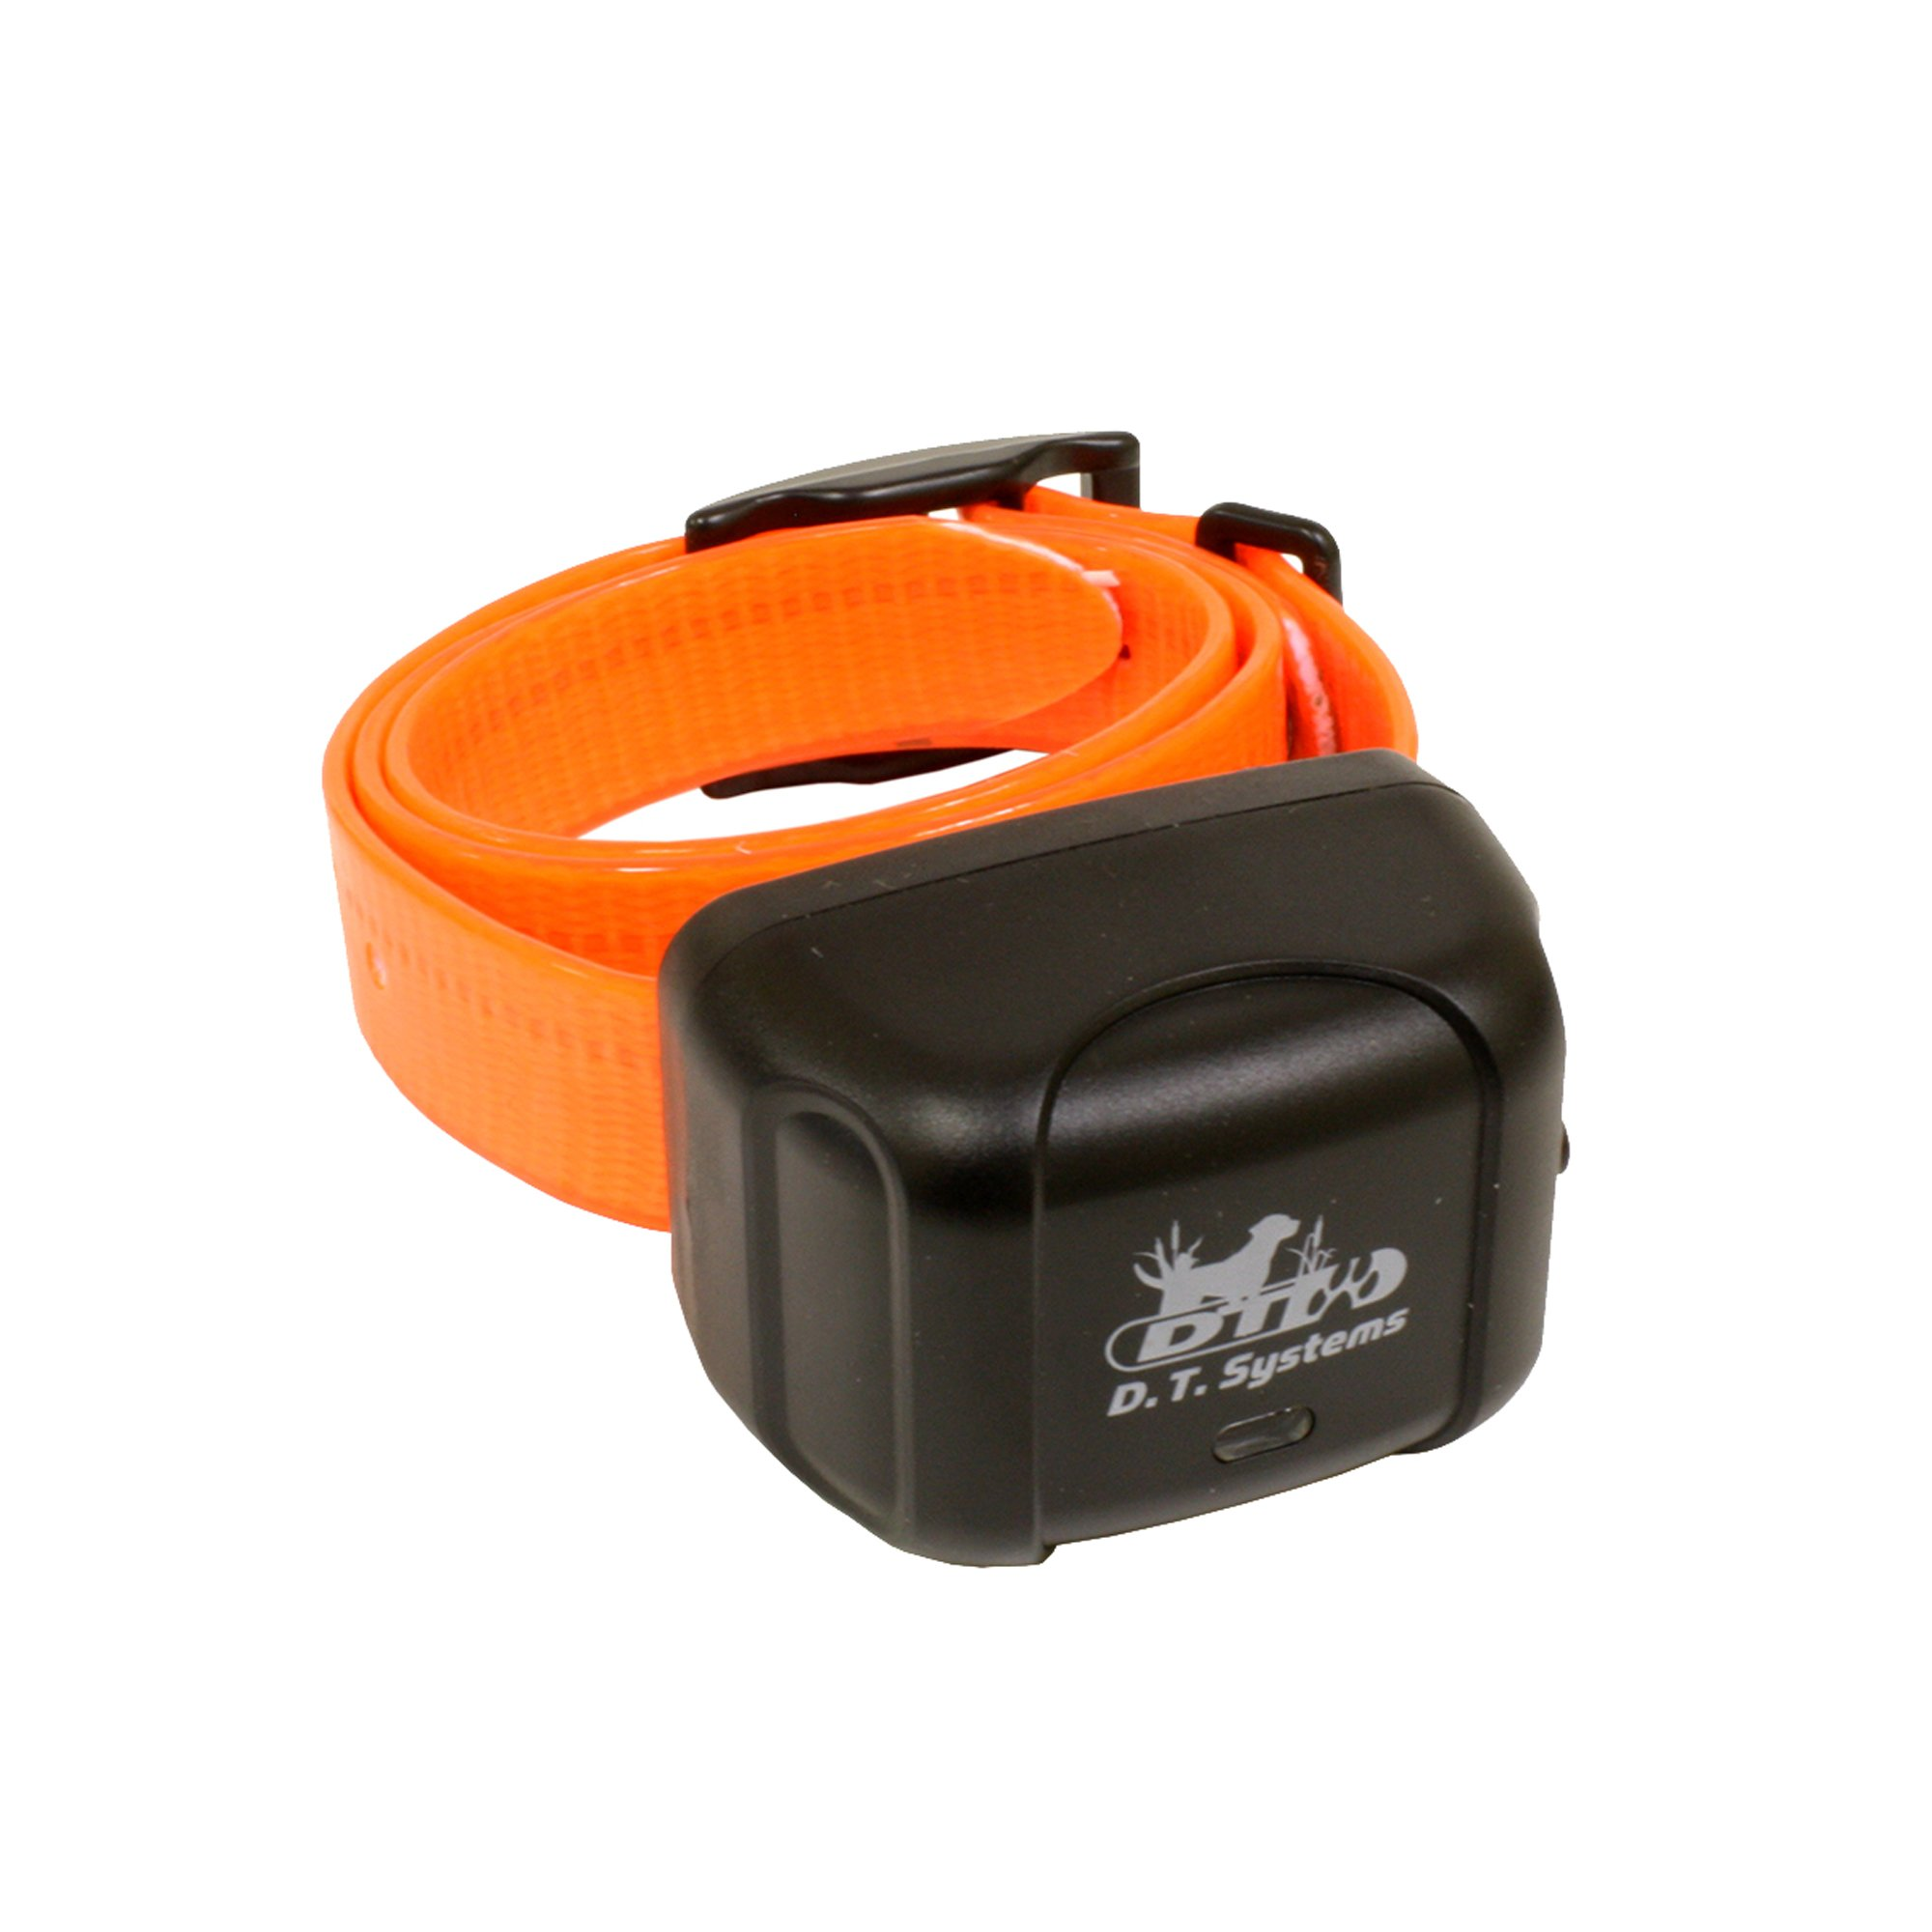 DT Systems Rapid Access Pro Trainer Add-On-Collar - Orange by DT Systems